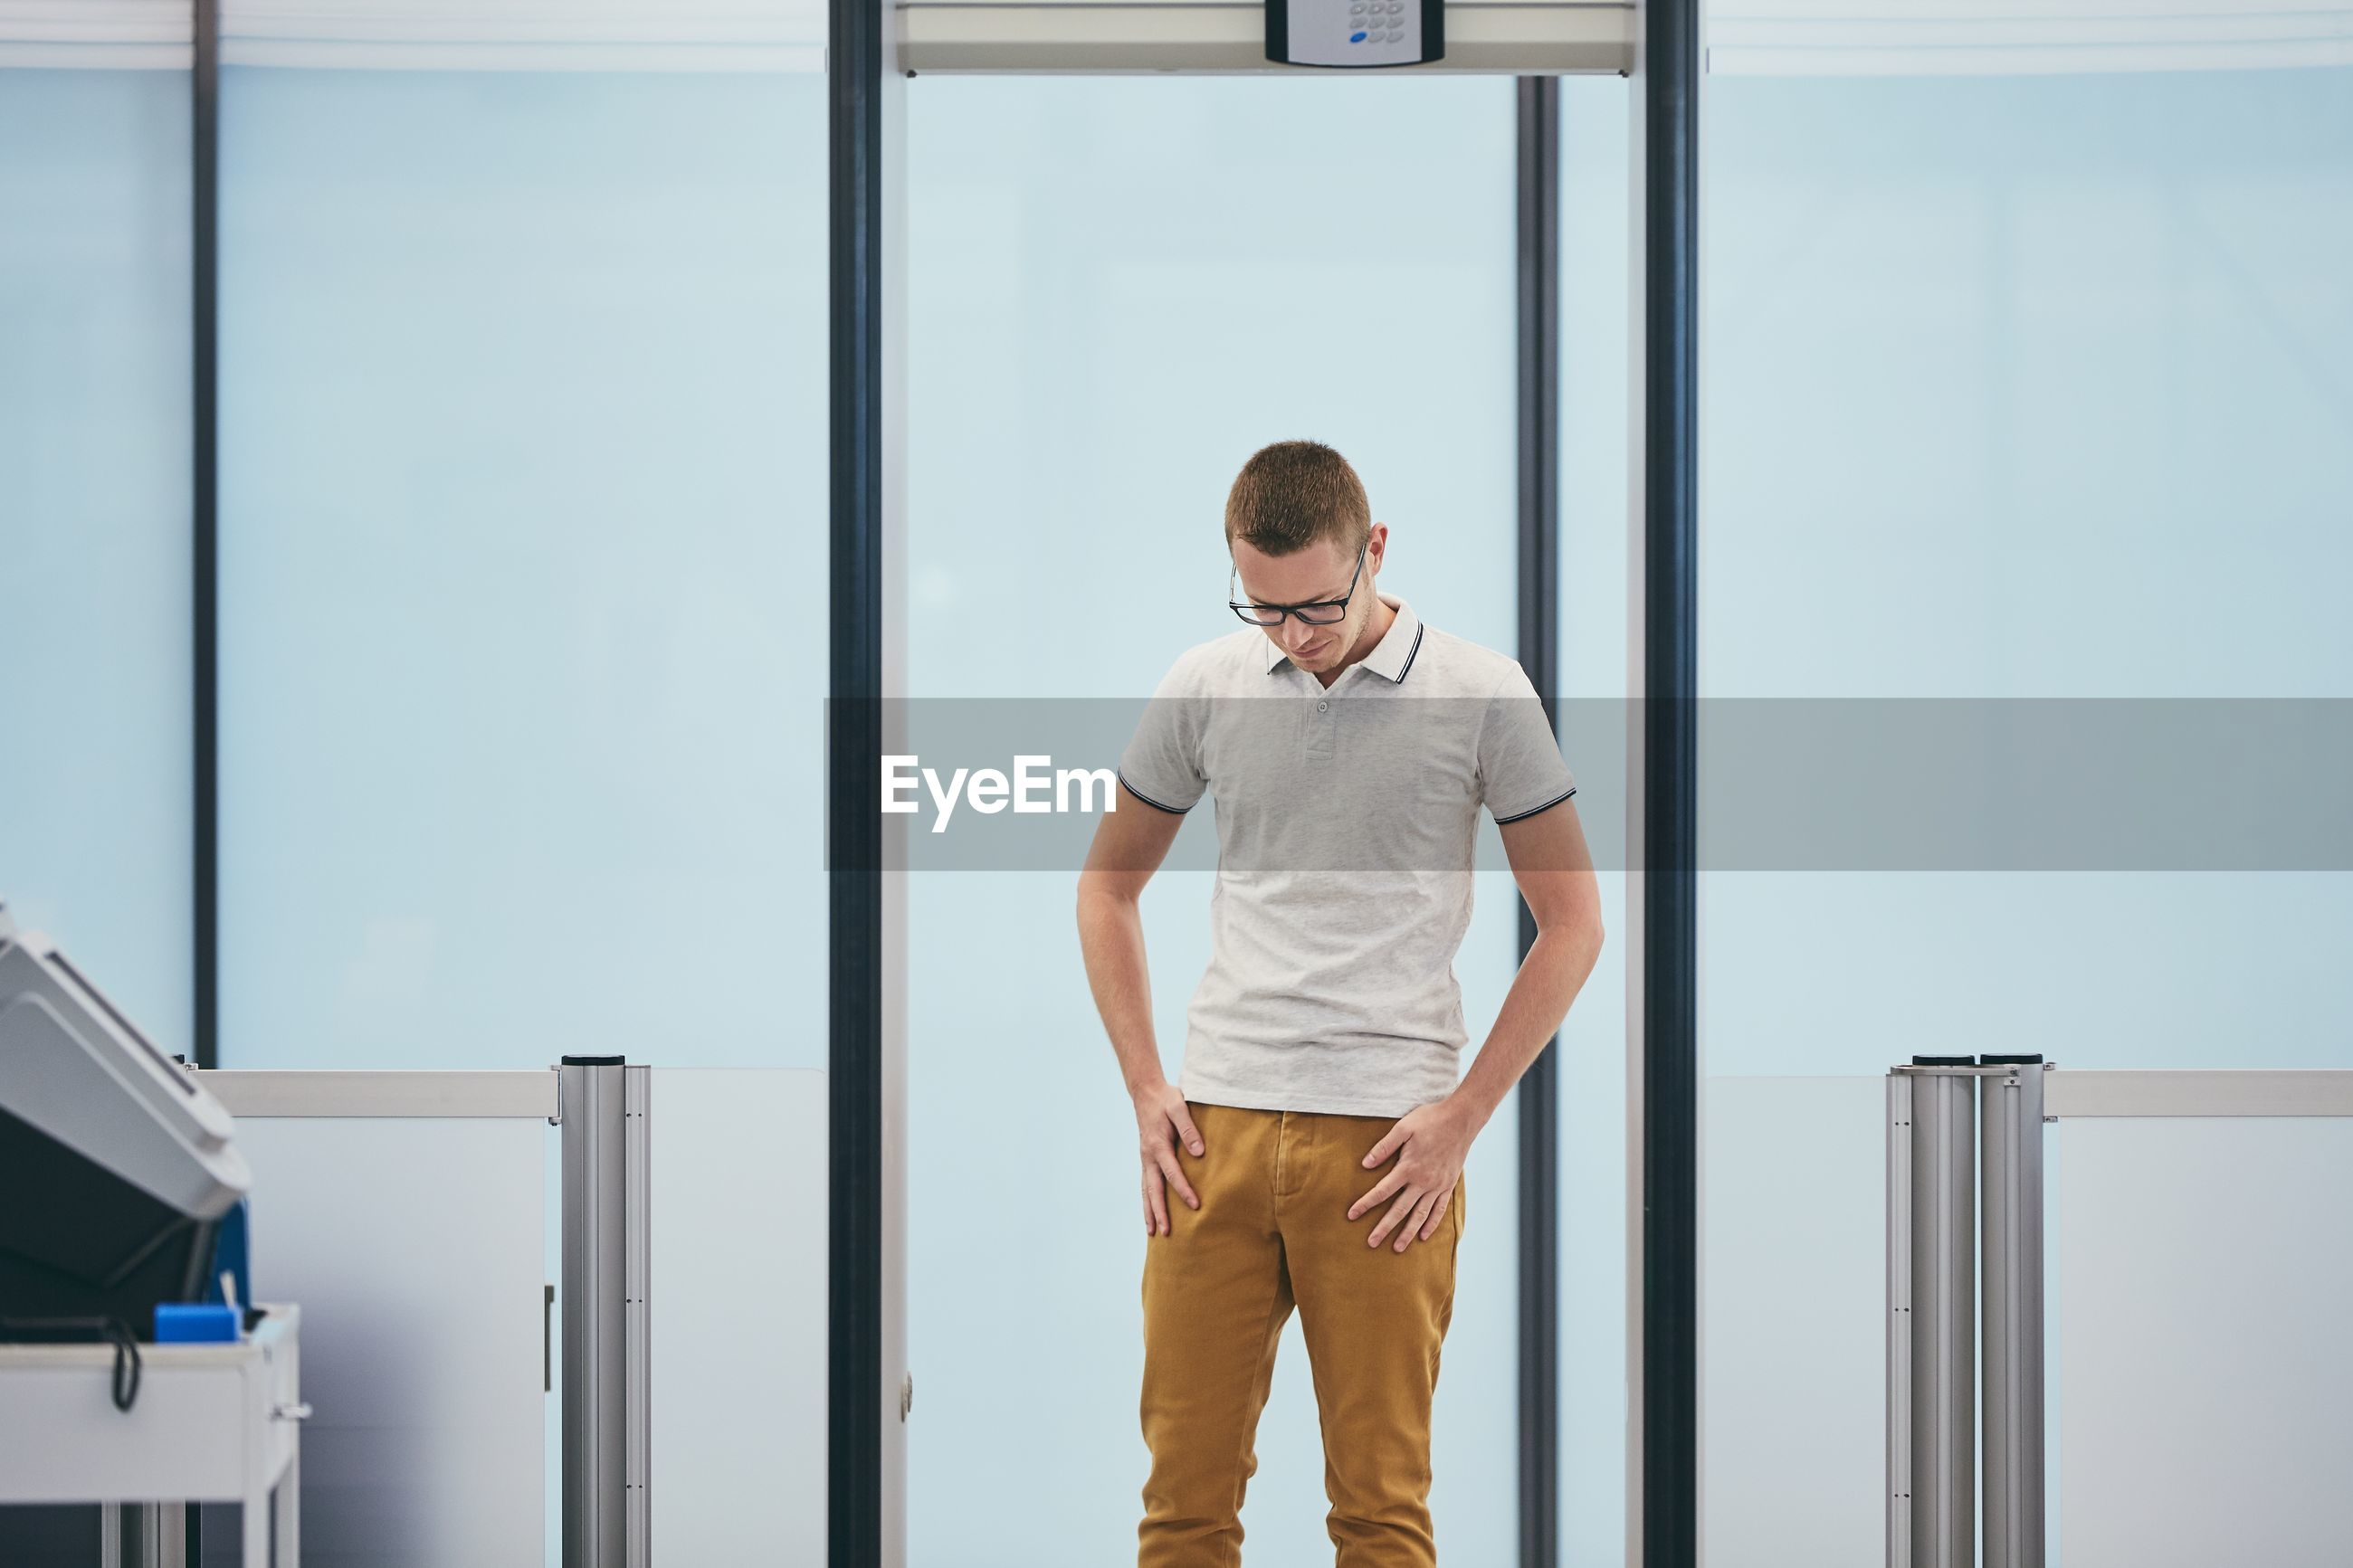 Man touching pockets while standing in airport